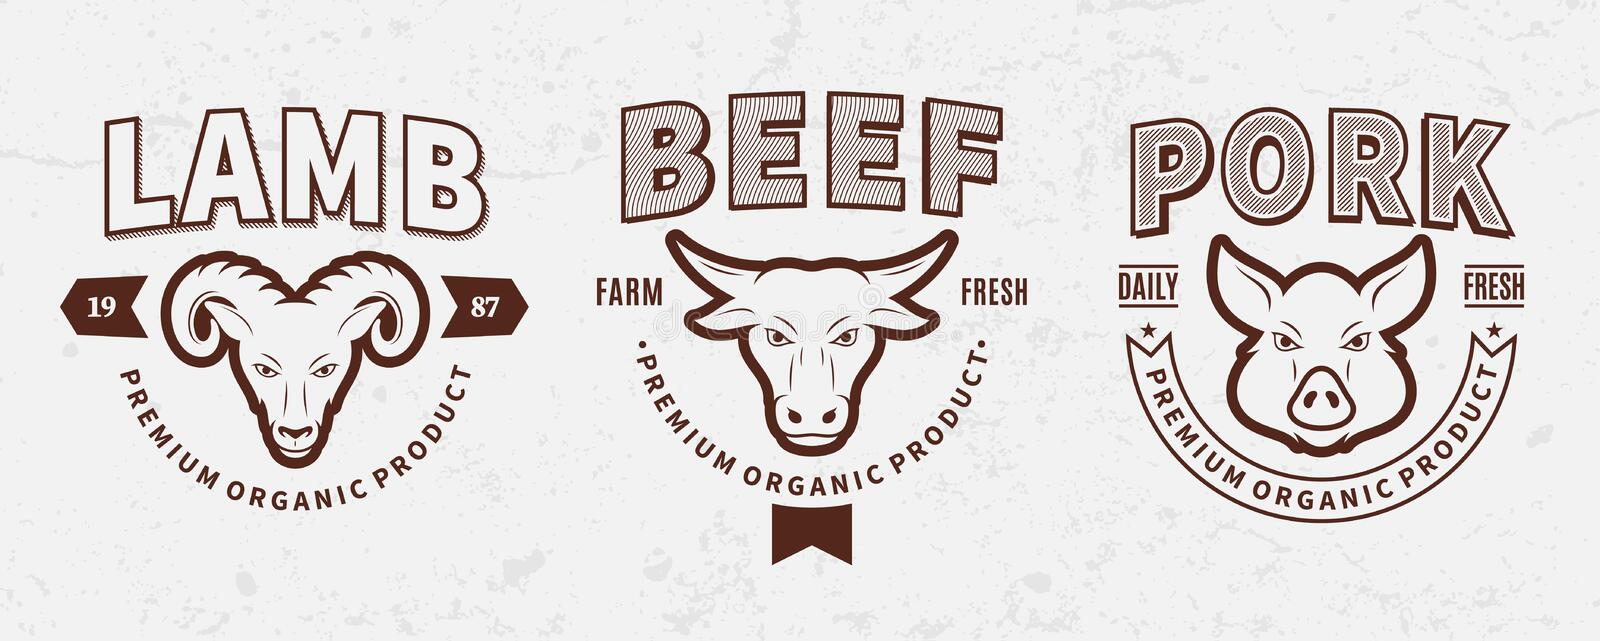 Butchery Logos, Labels, Farm Animals Icons and Design Elements. Set of butchery logo templates. Butchery labels with sample text. Butchery design elements and stock illustration